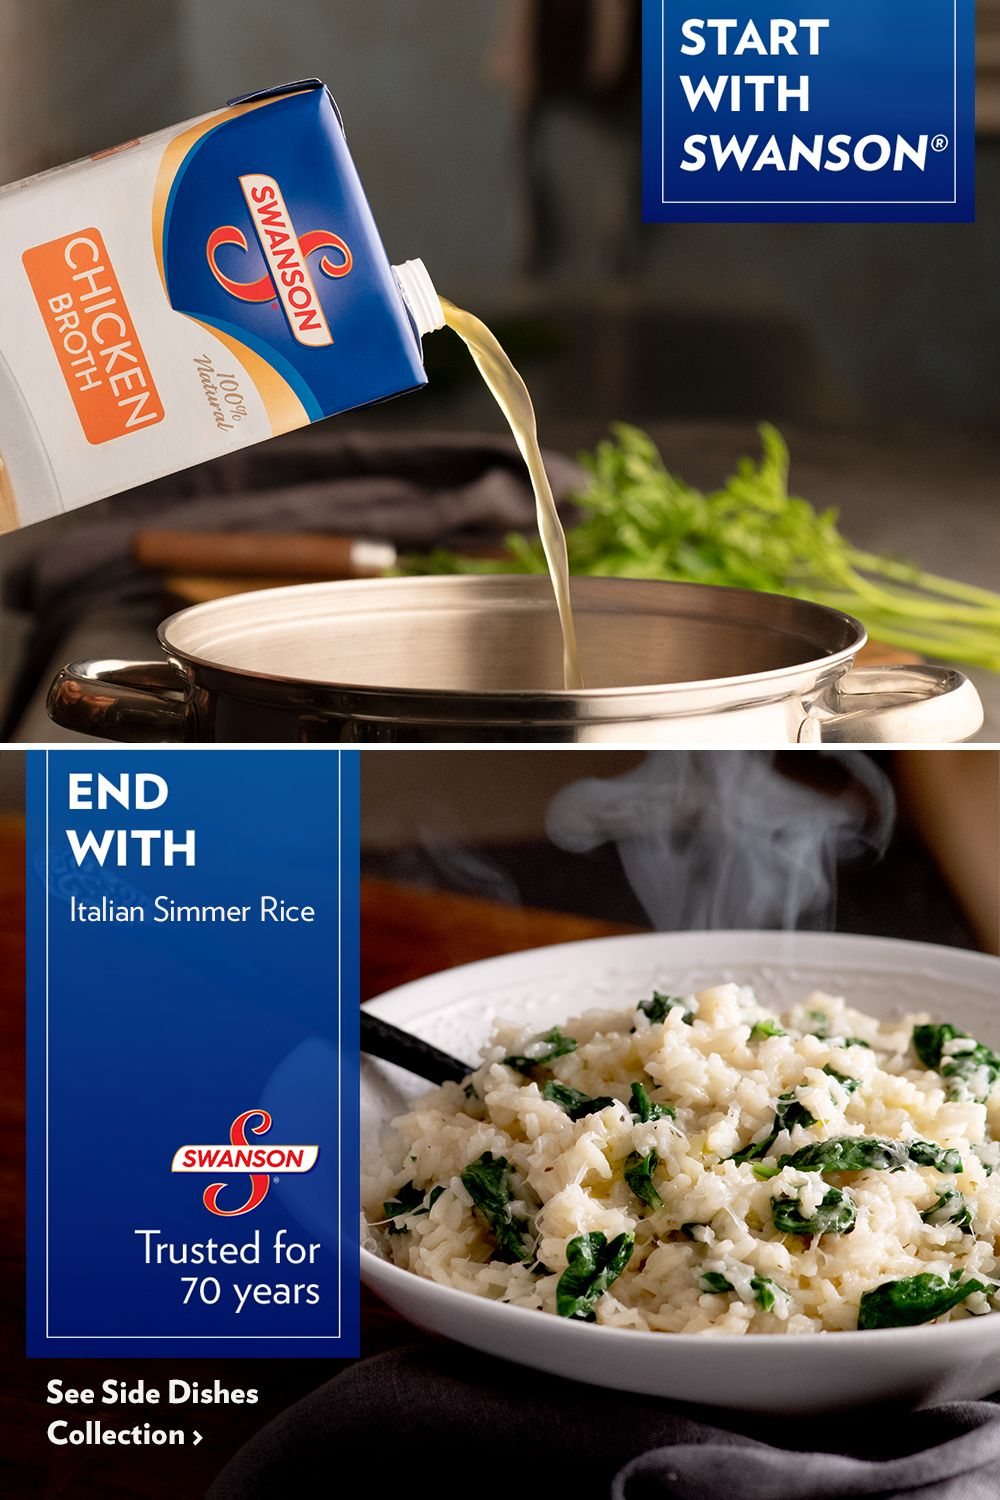 Don't think twice on the rice. Start with Swanson to make